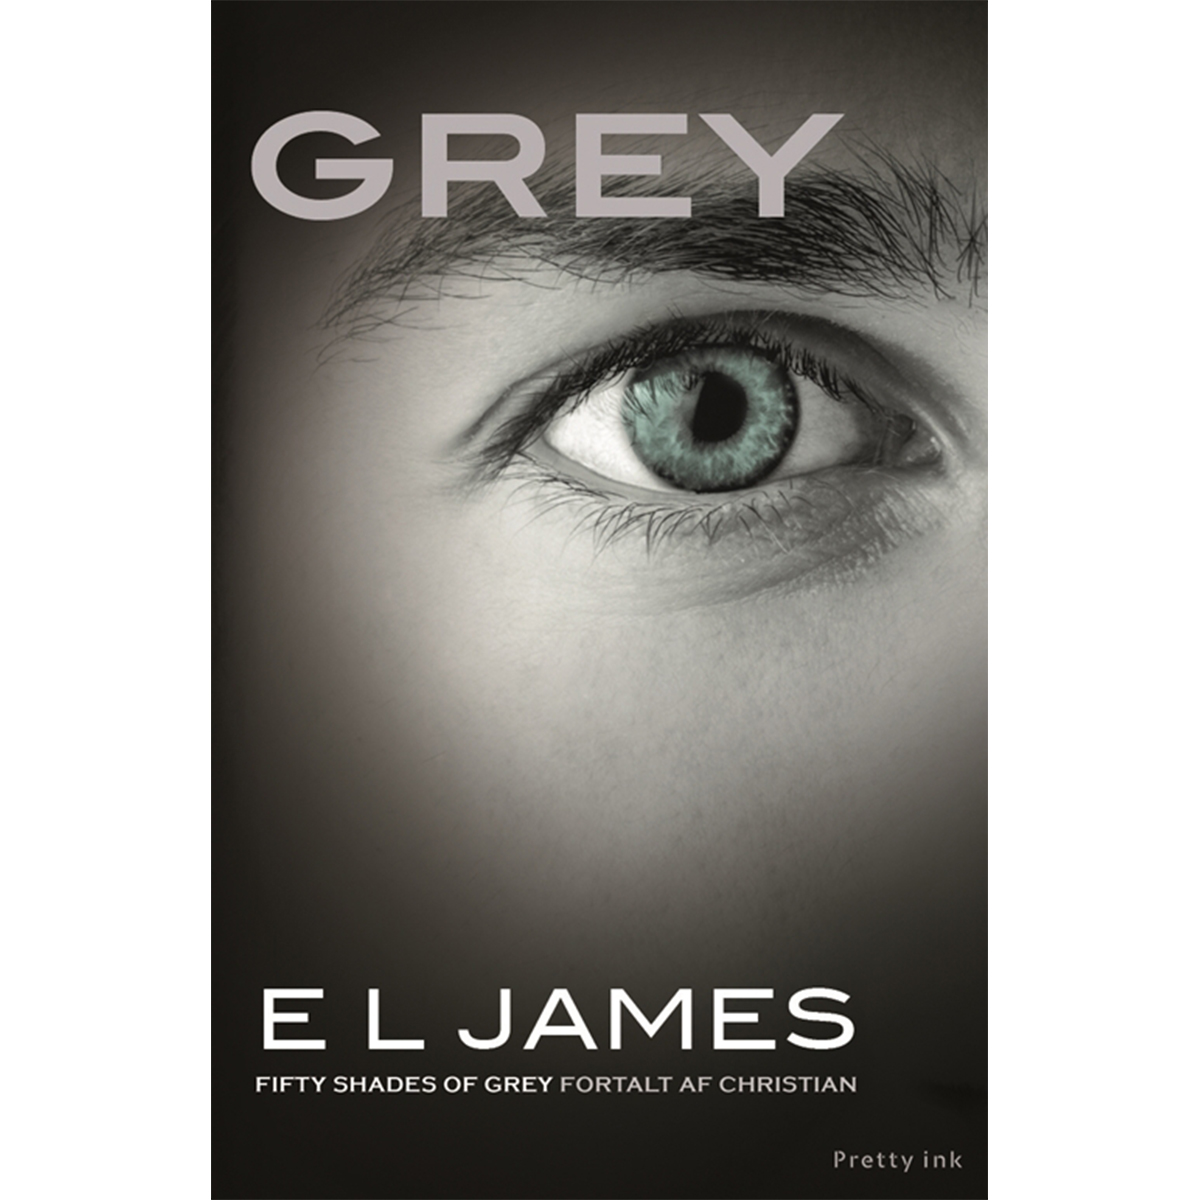 Image of   Grey - Fortalt af Christian - Fifty shades 1 - Hæftet